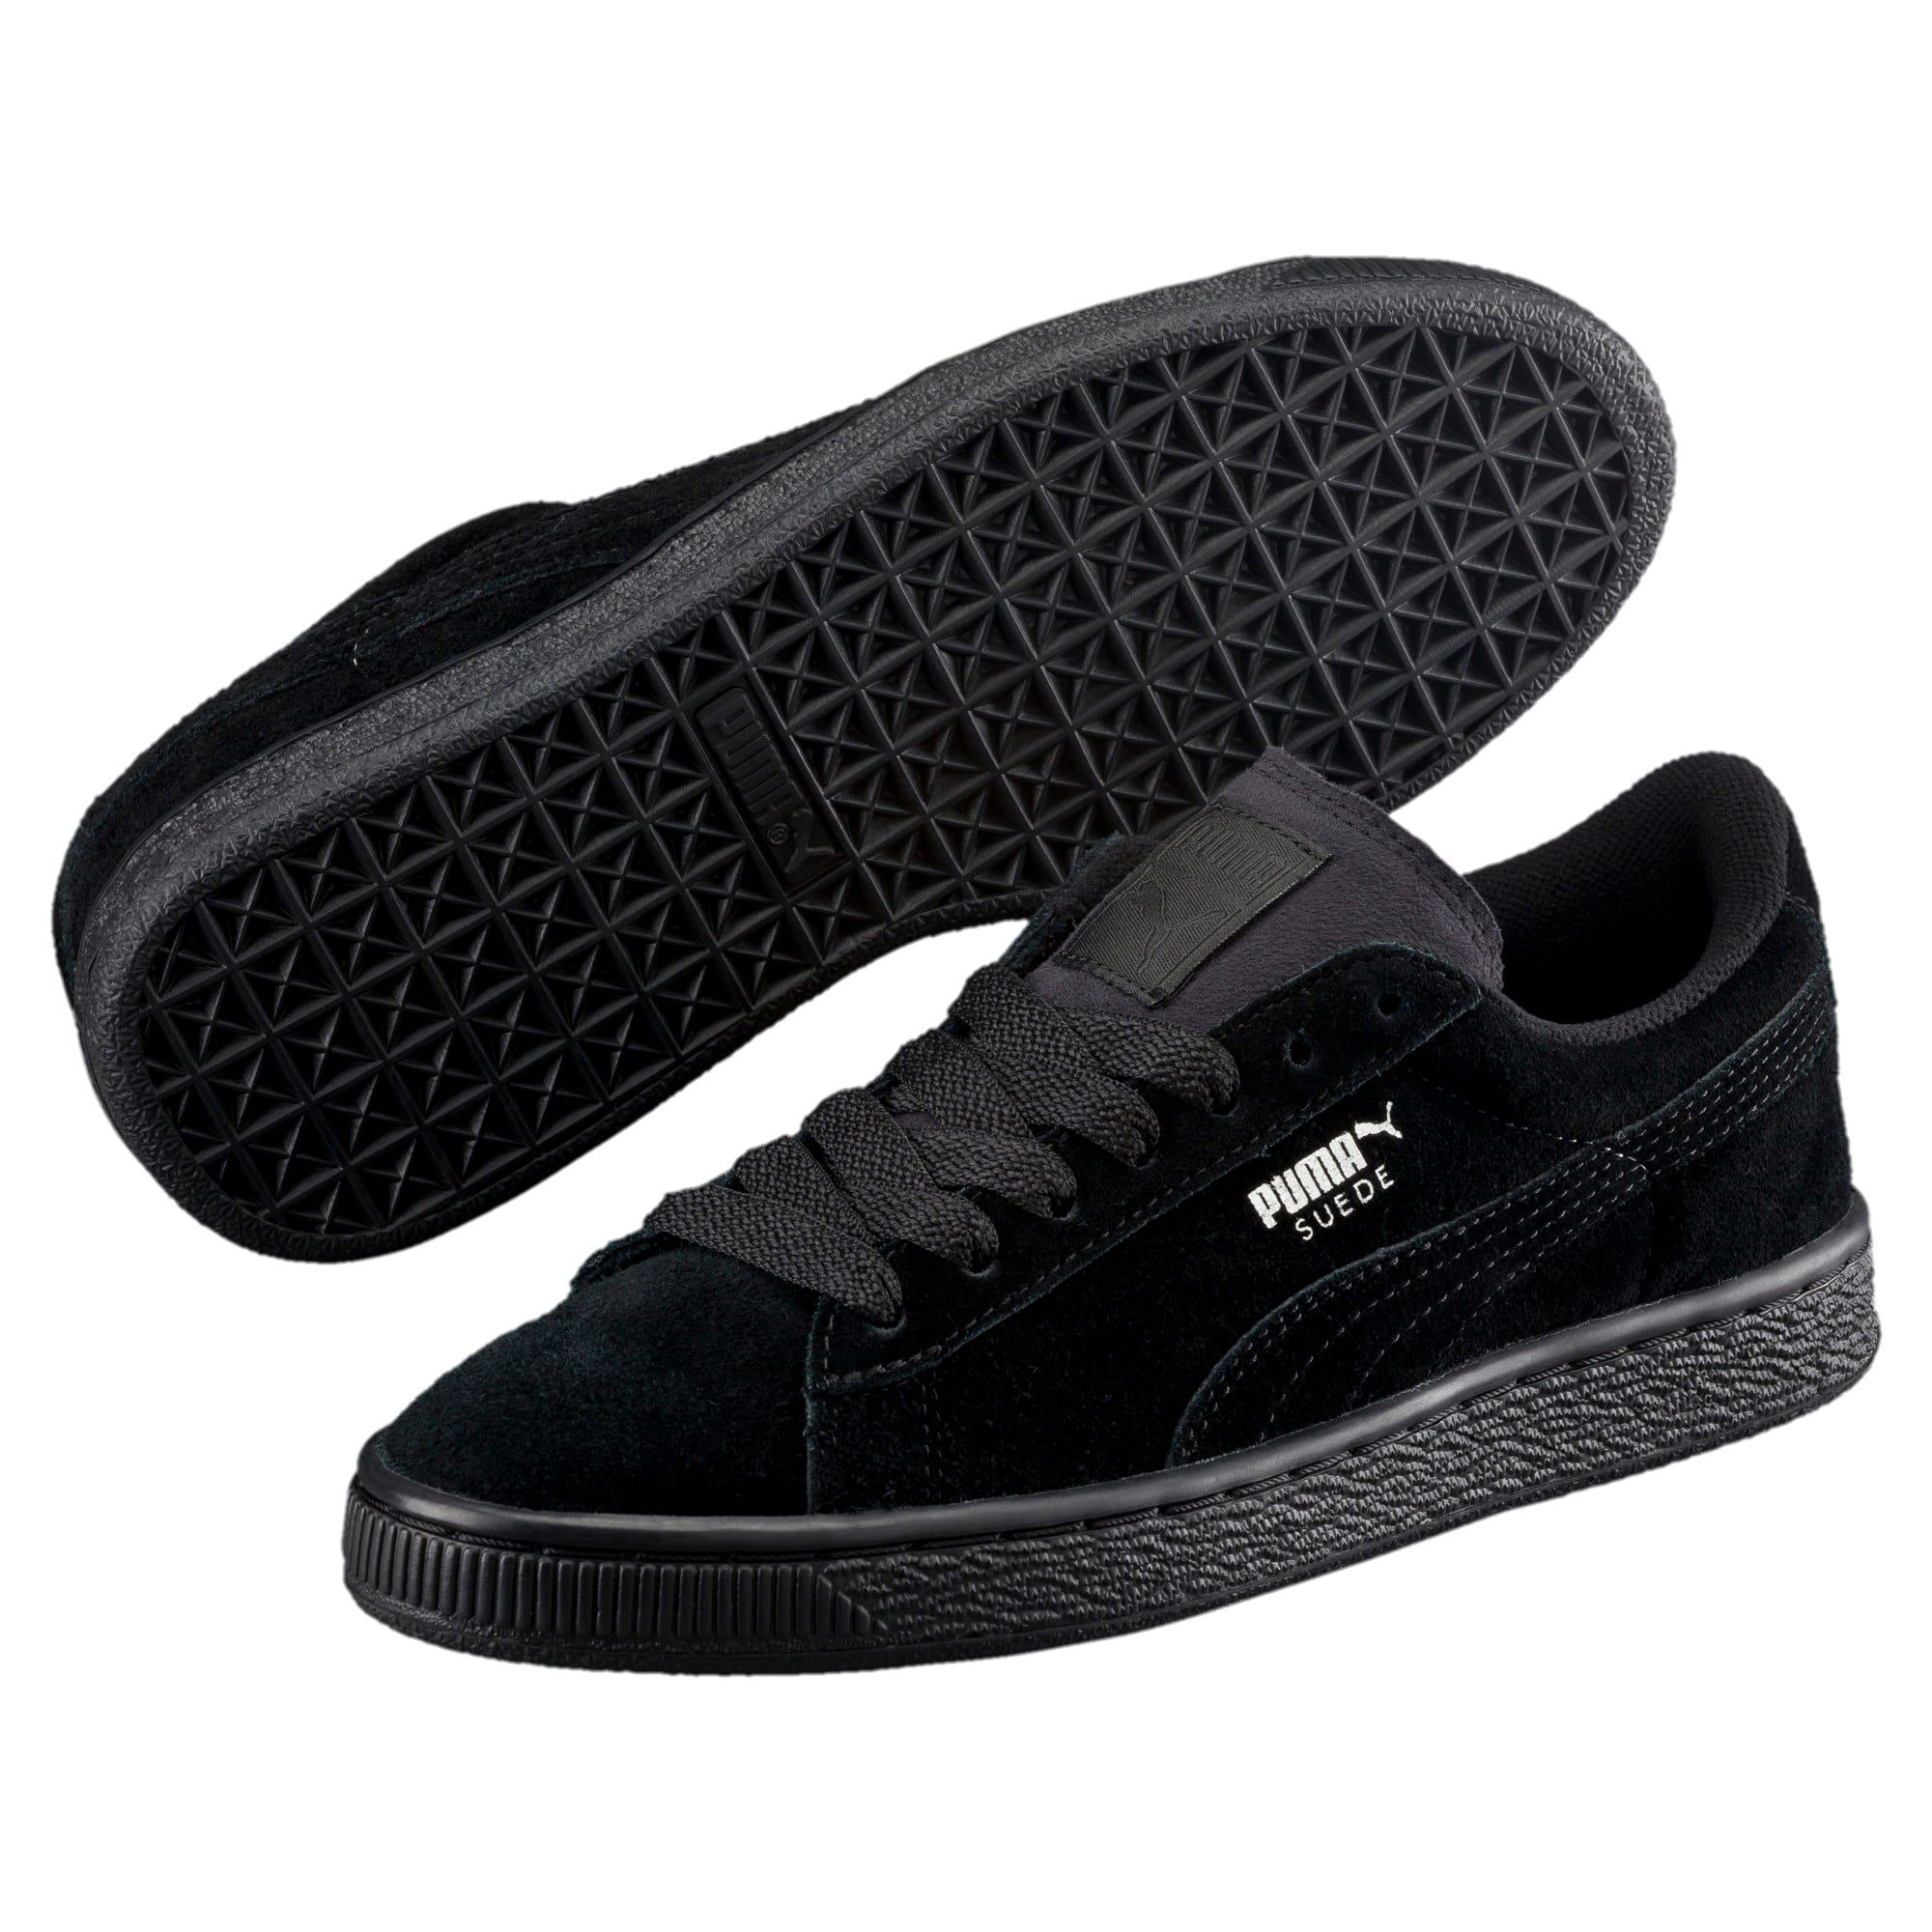 PUMA Kid's Suede Trainers in Black/Silver size 11.5